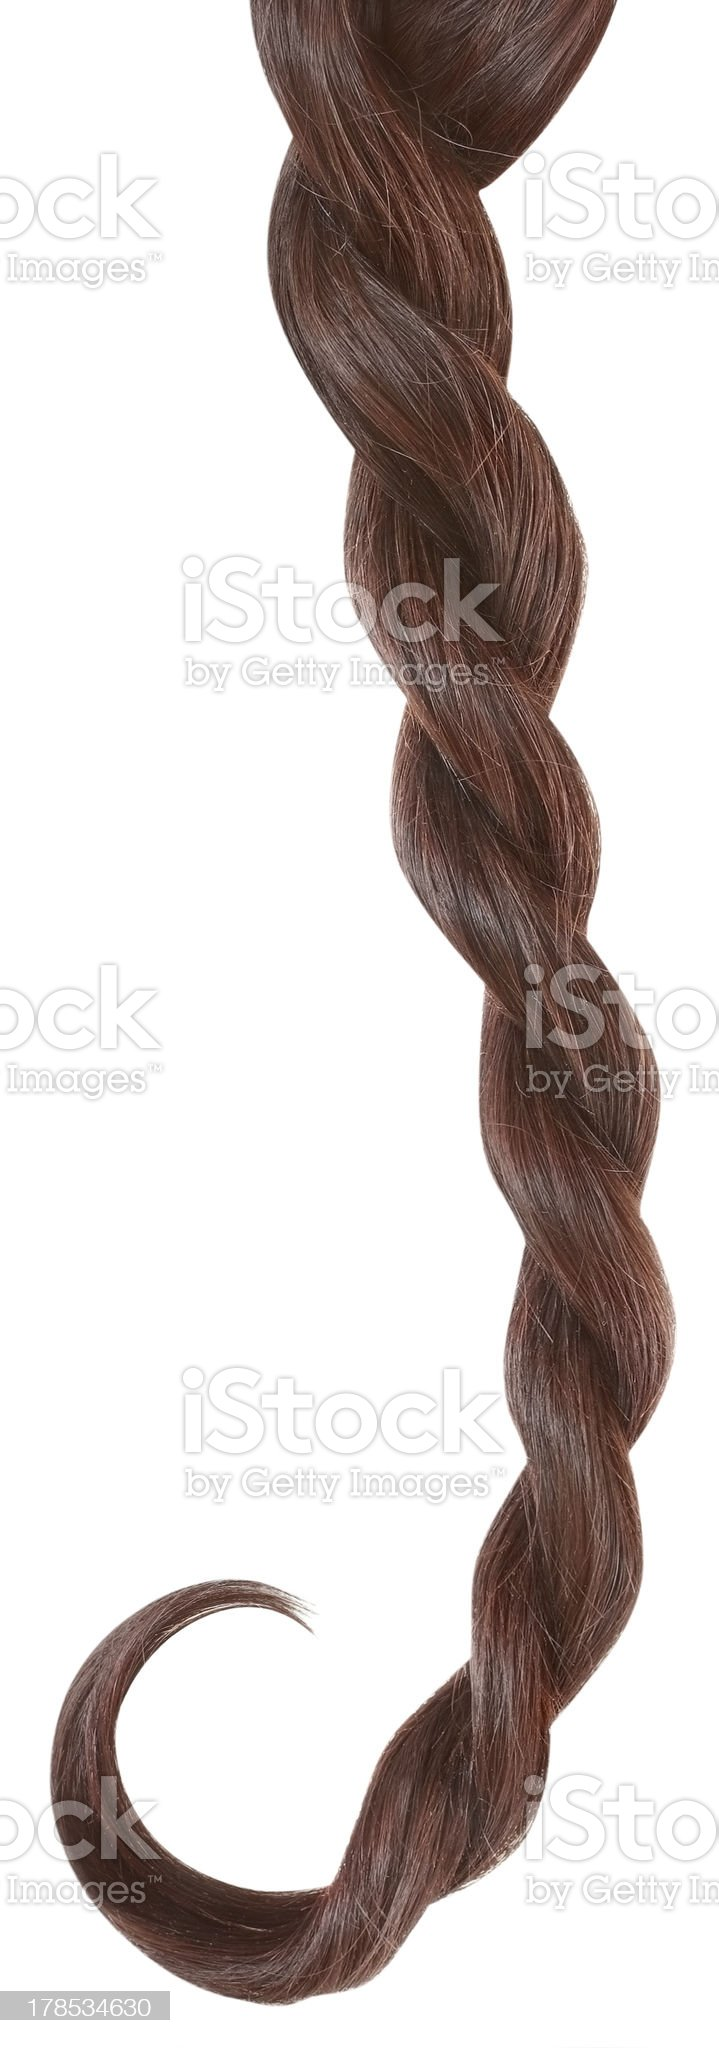 Braid isolated on white. royalty-free stock photo